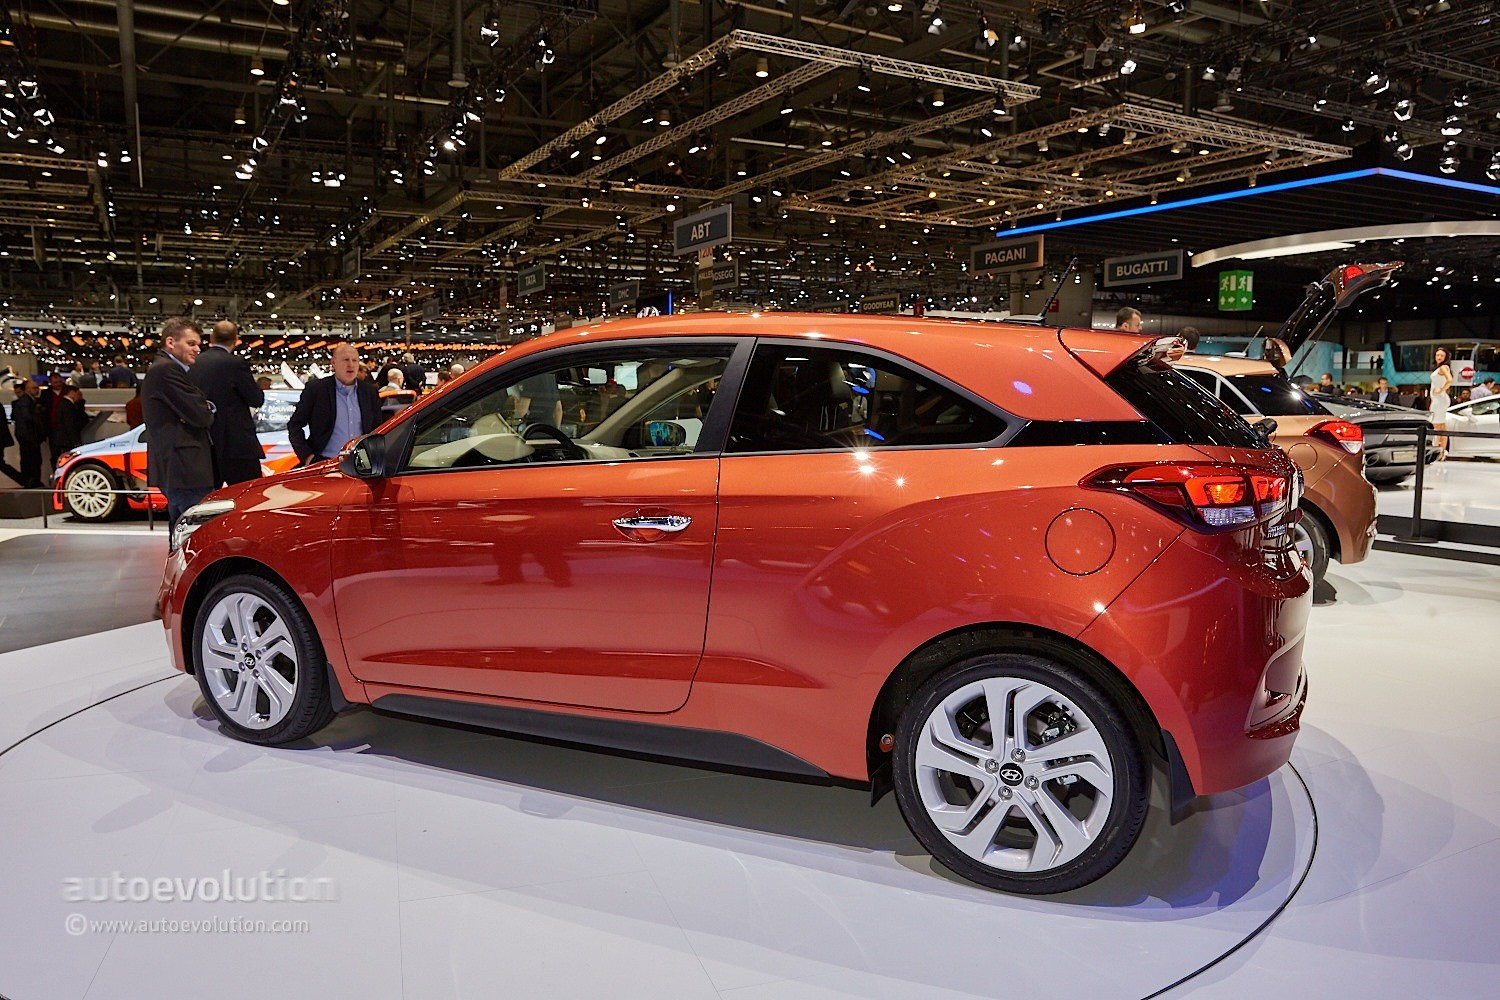 2015 Hyundai i20 Coupe Is the Coolest Supermini in Geneva ...